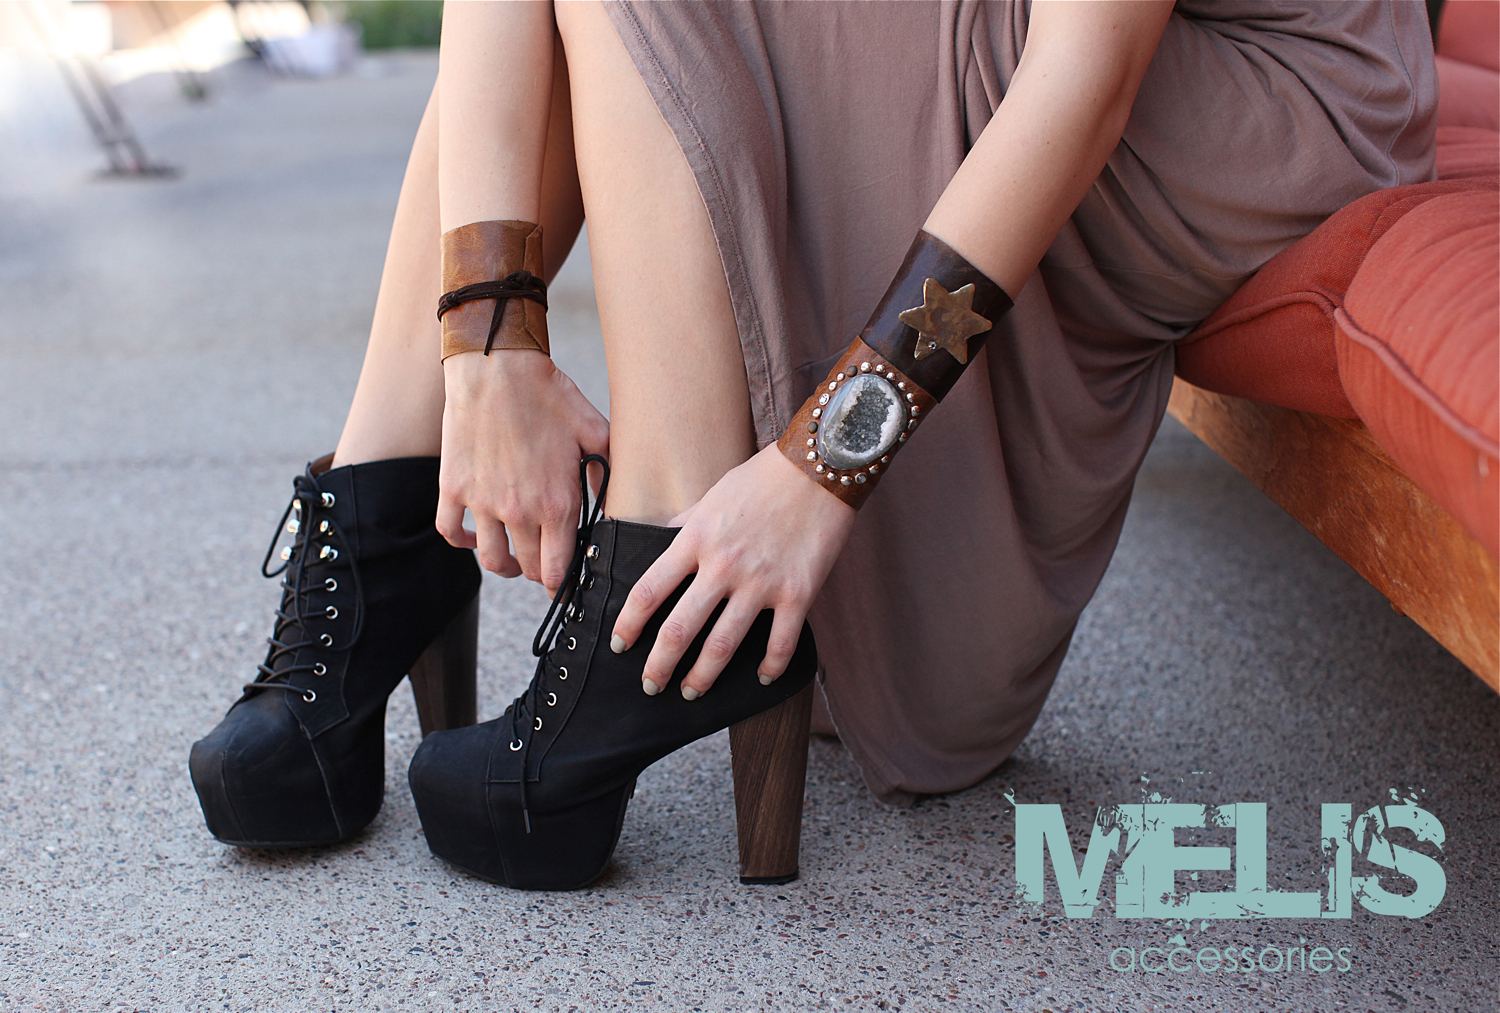 Melis Accessories Phoenix Fashion Week Emerging Accessory Designer